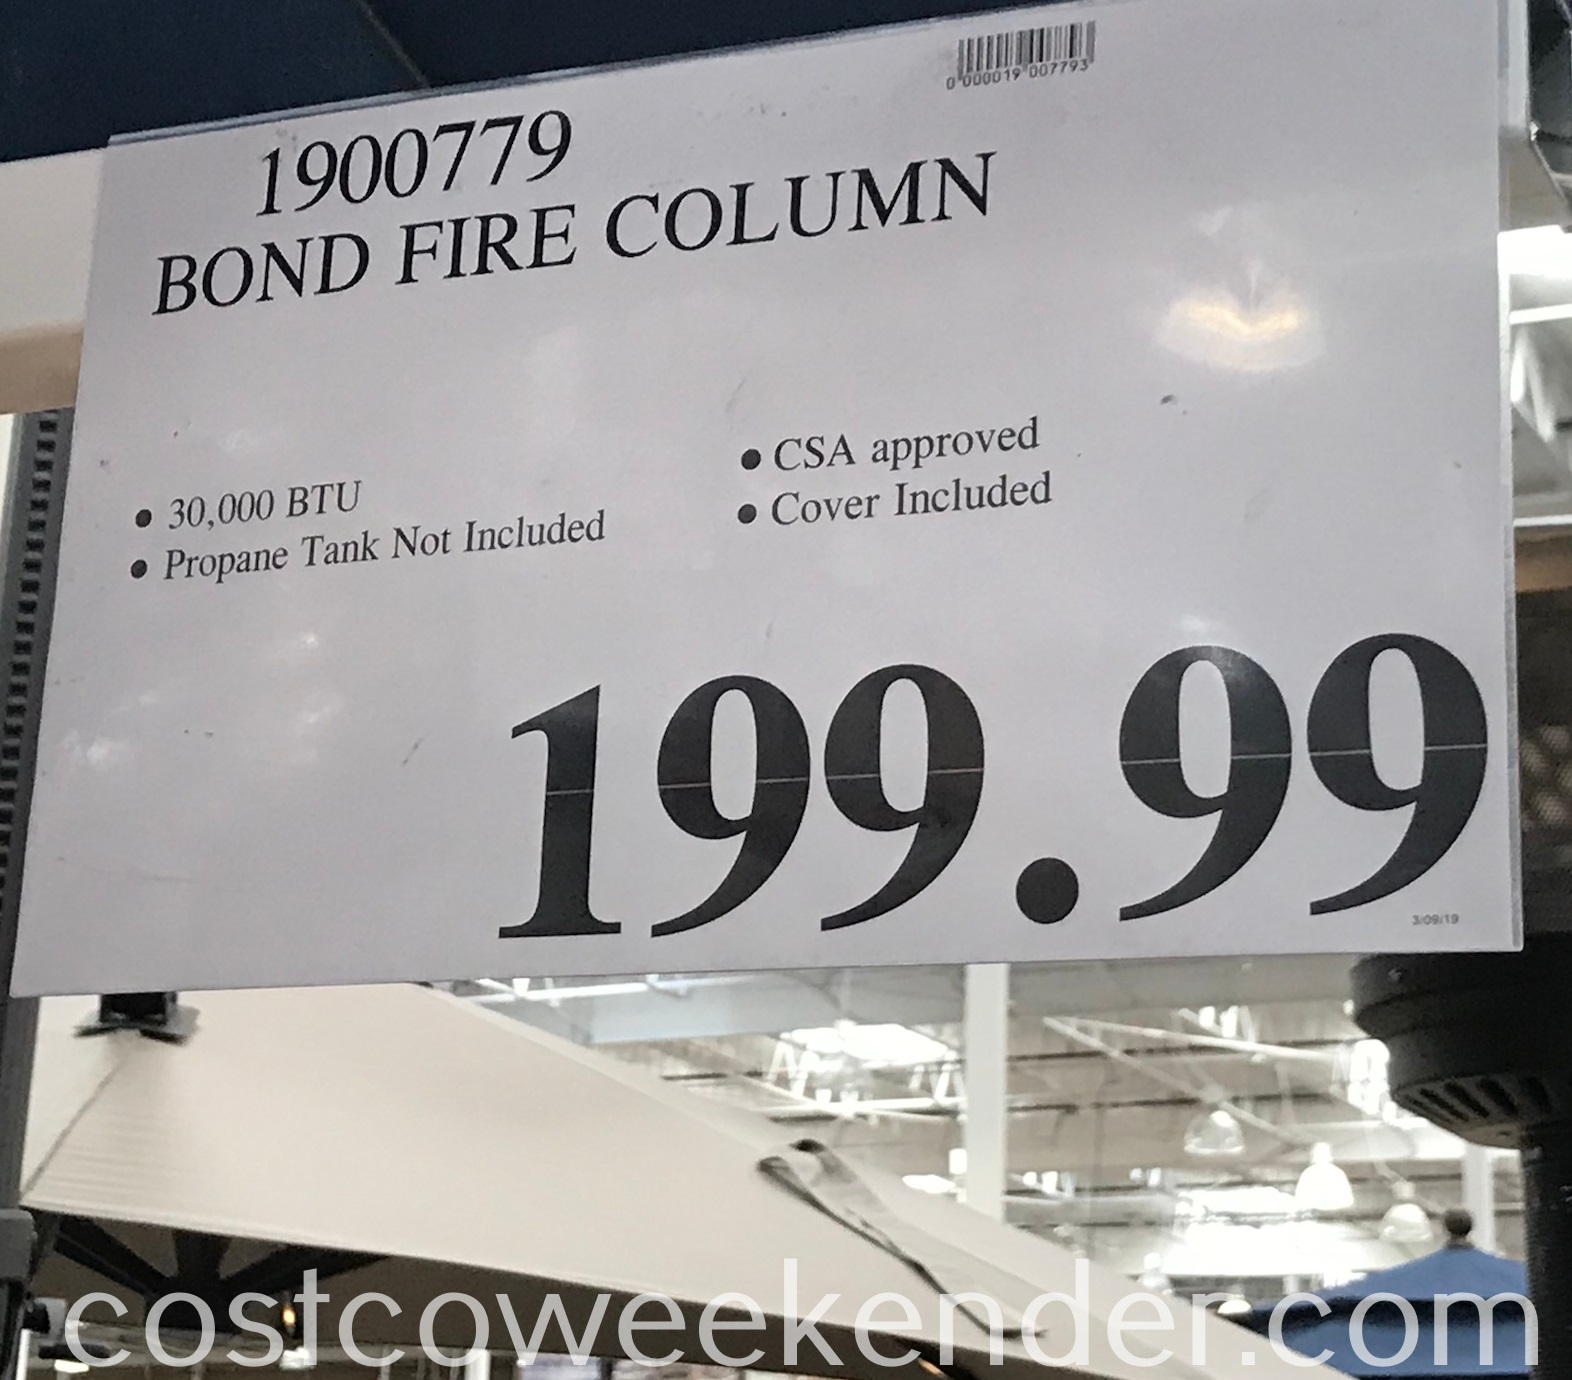 Deal for the Bond Gas Fire Column at Costco